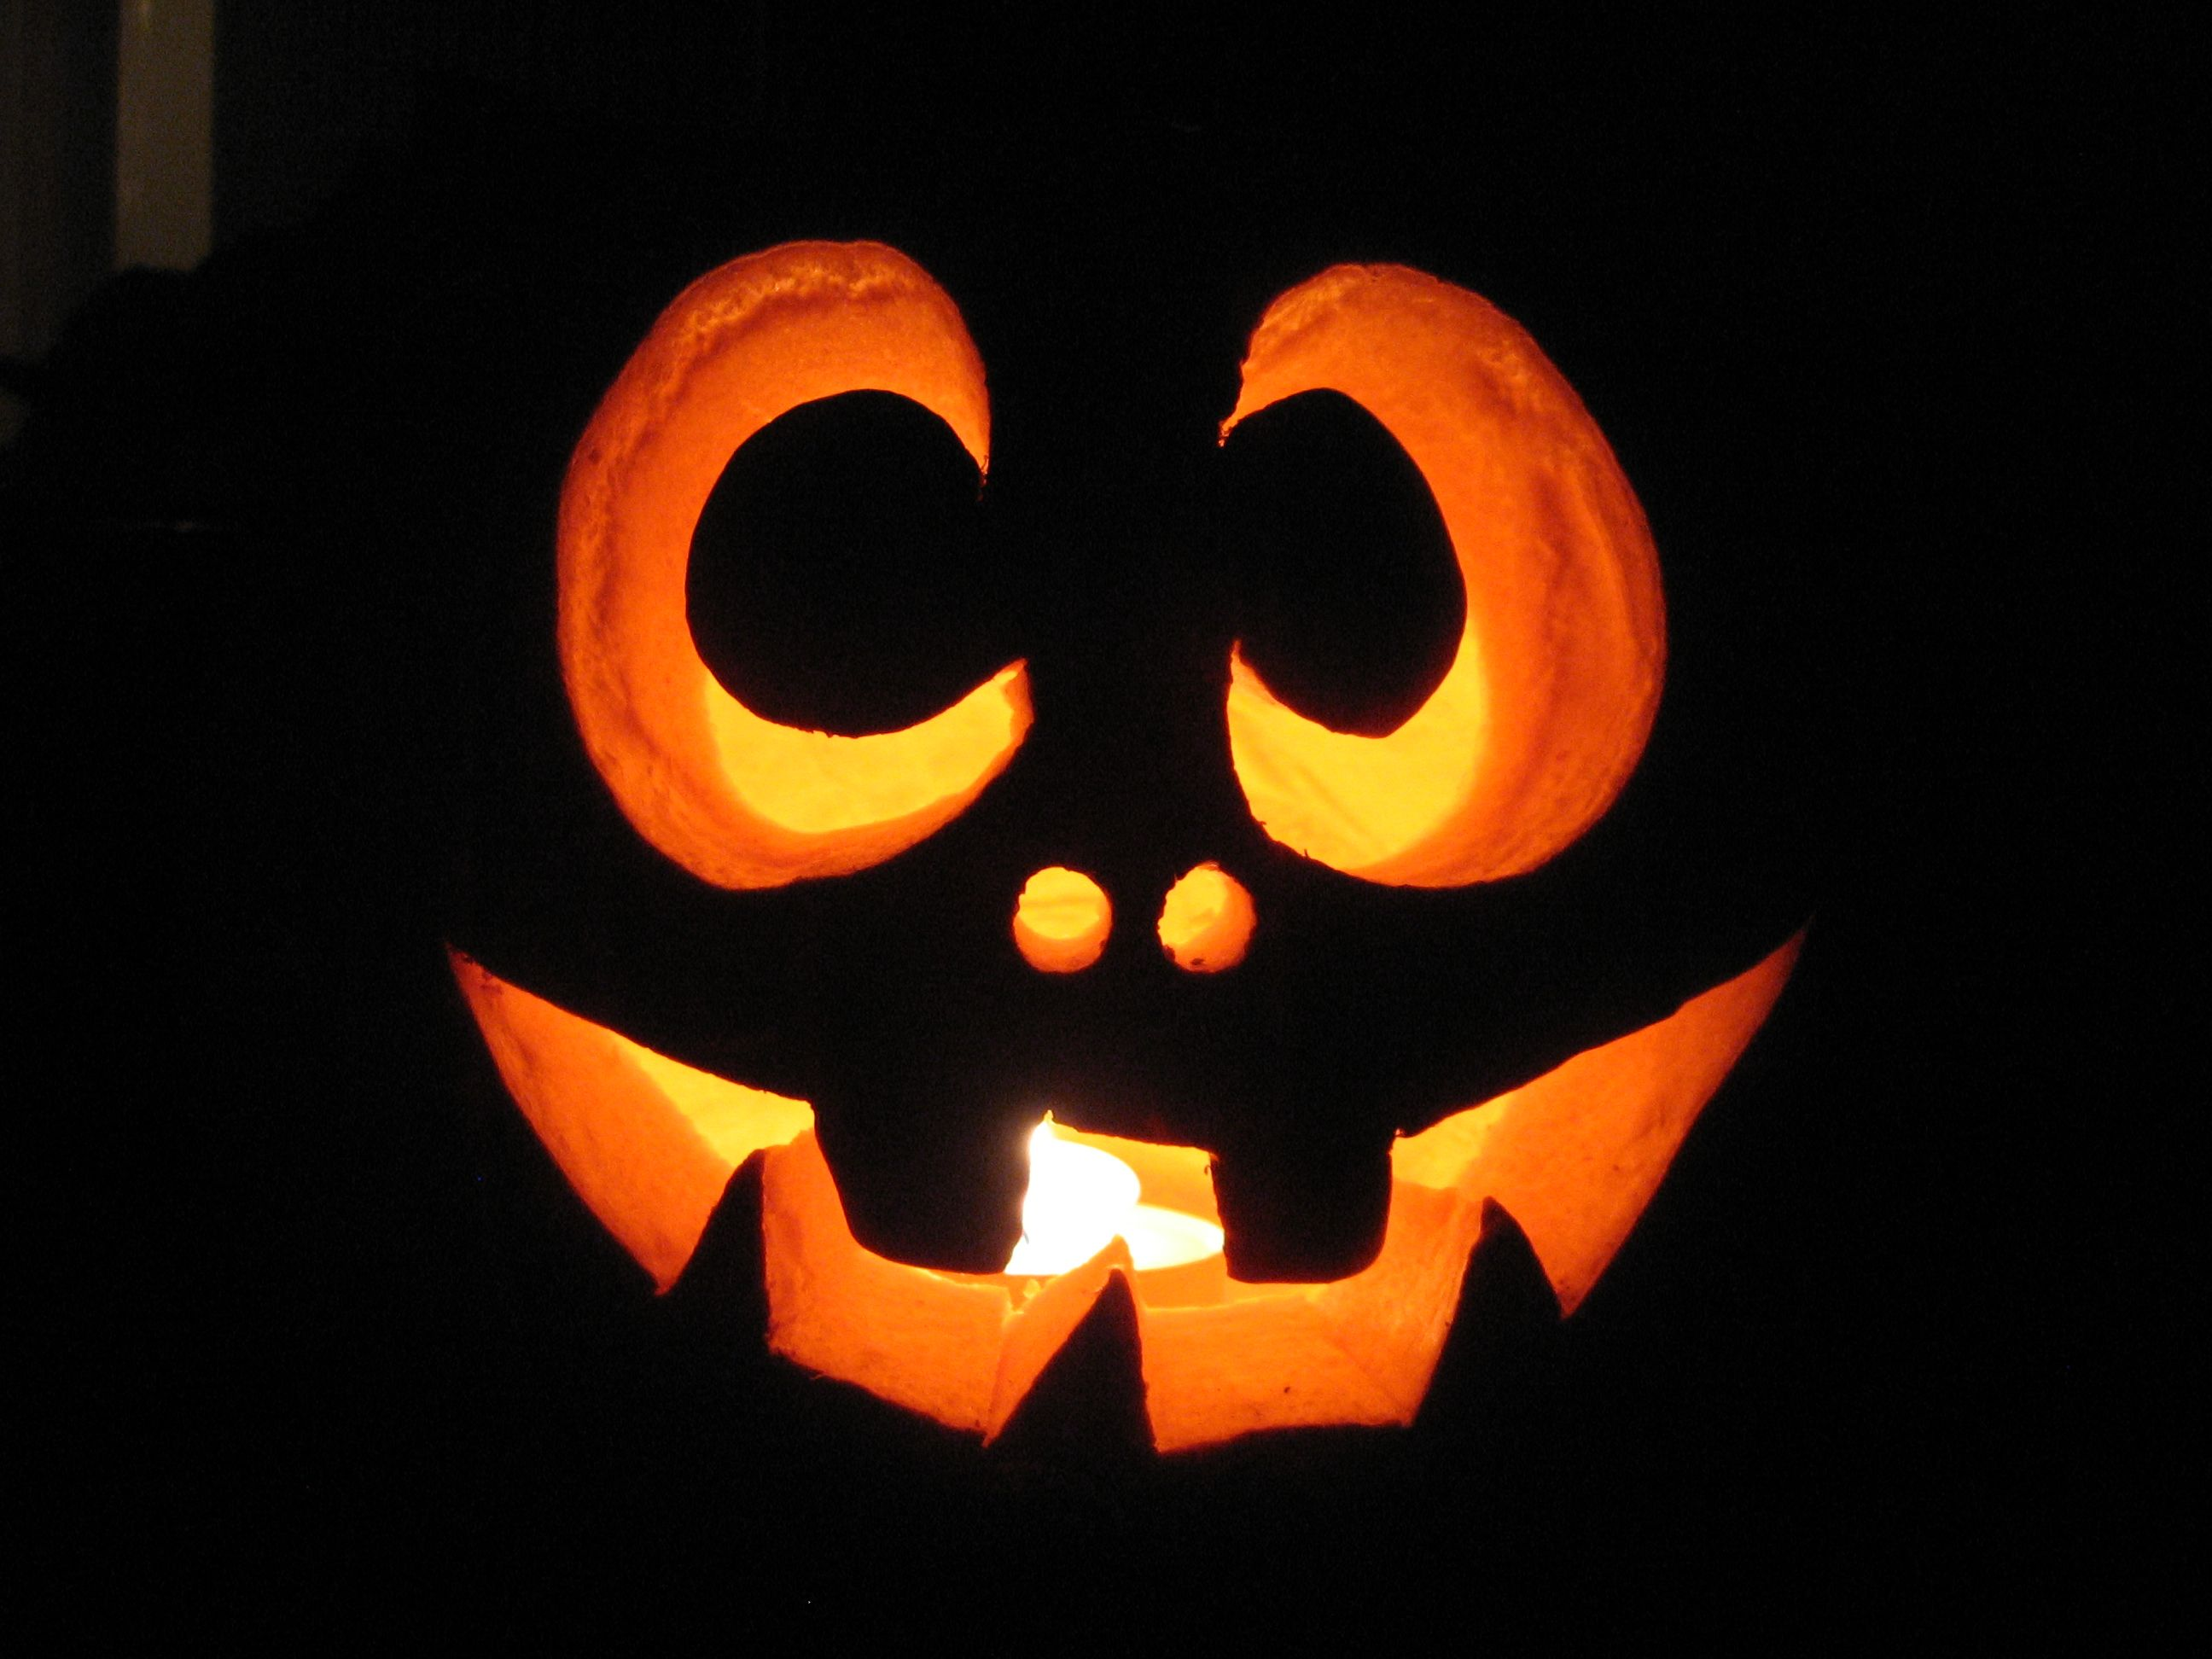 Jack o lantern wikipedia the free encyclopedia